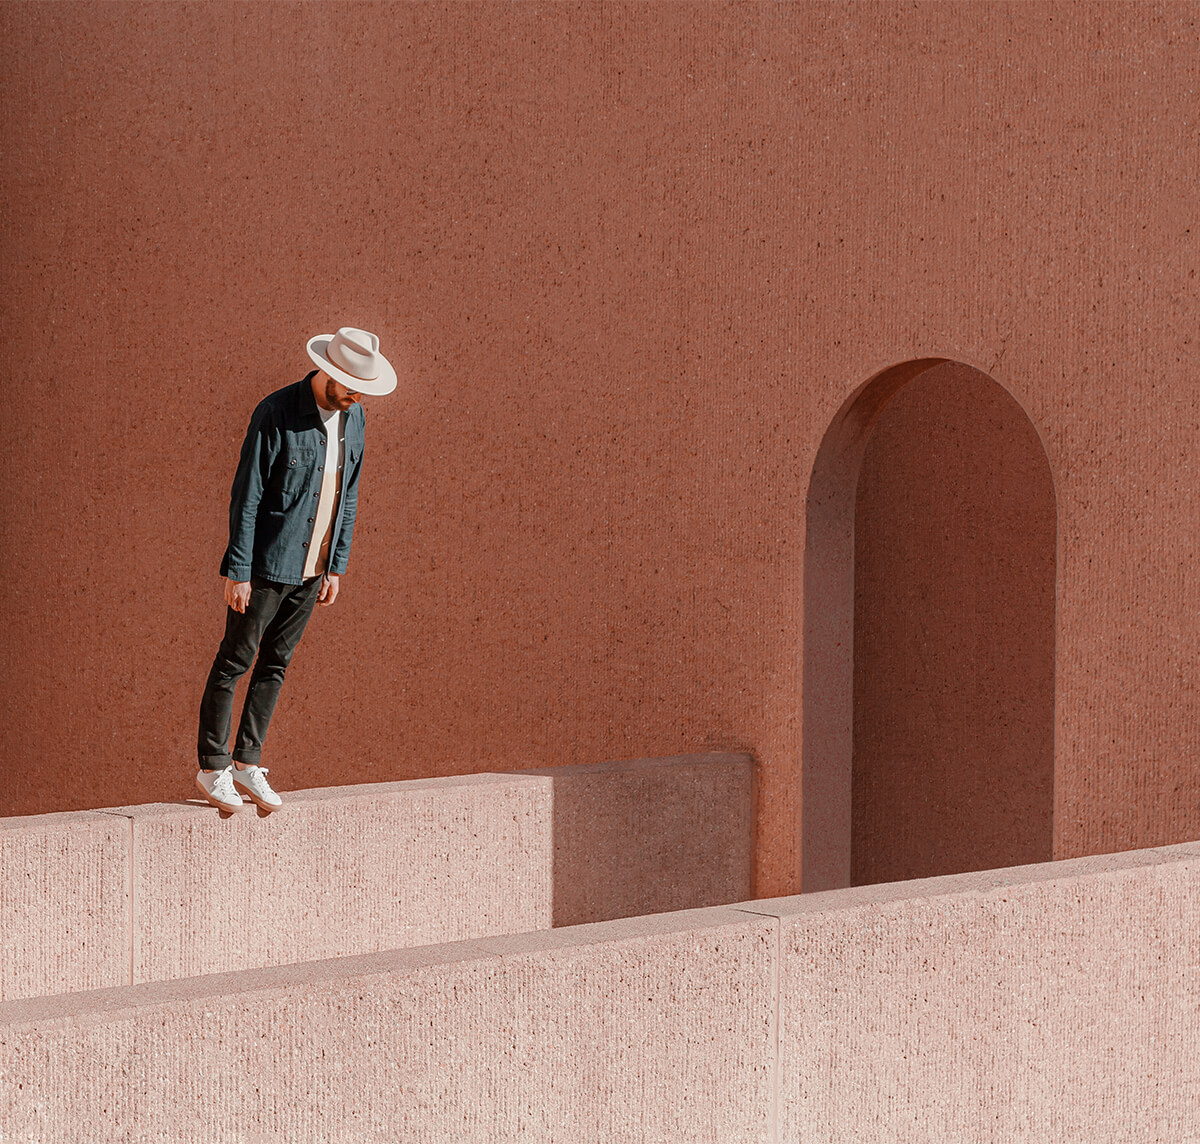 Optical illusion of man standing on ledge and leaning over